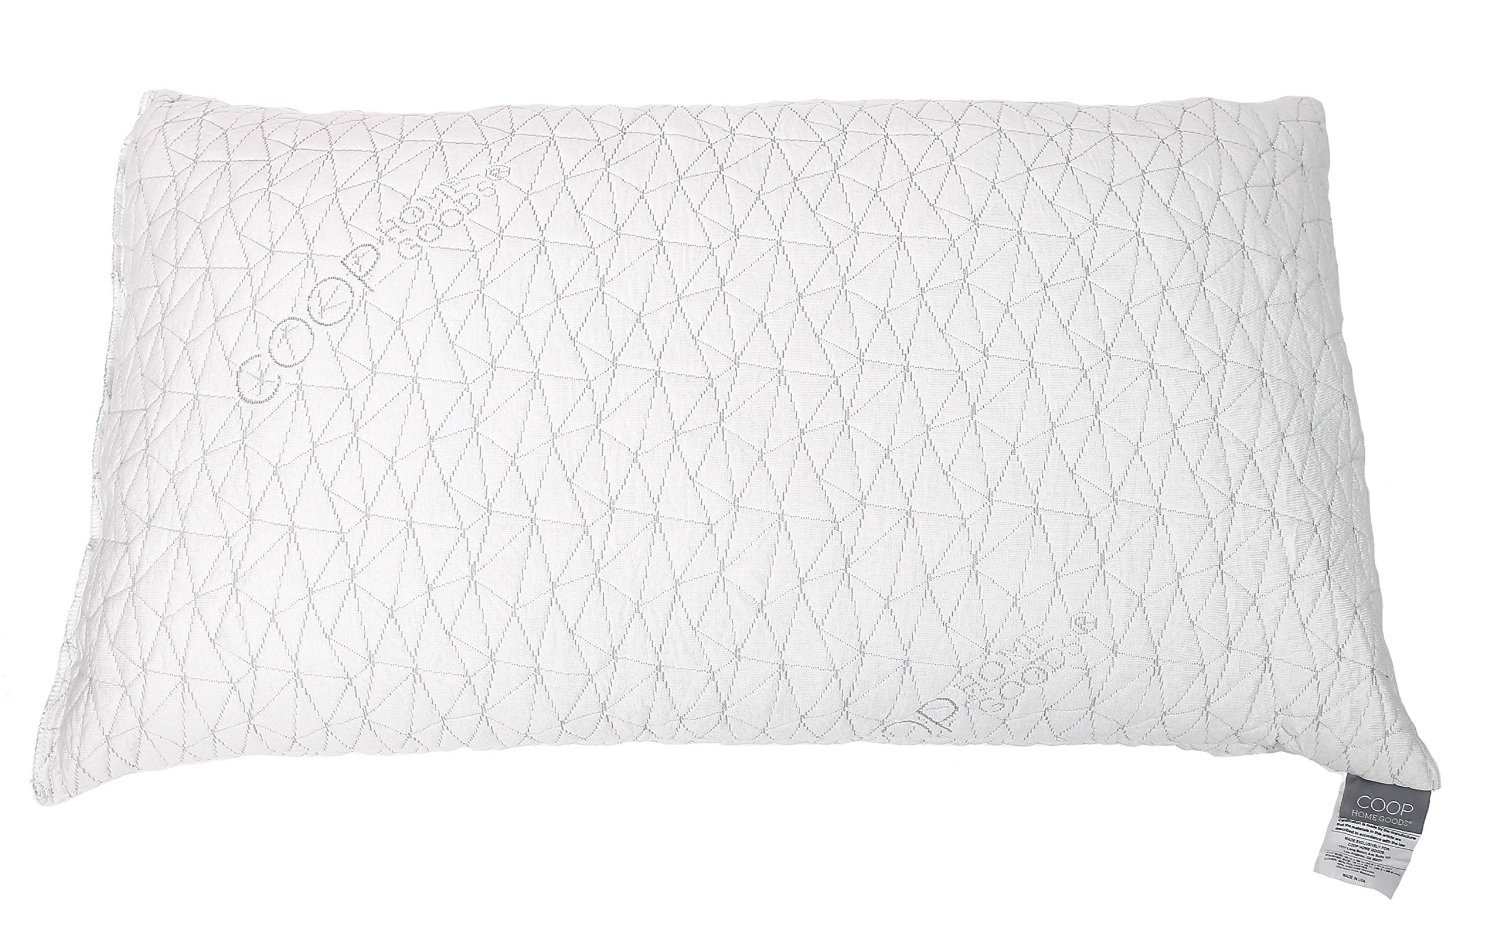 Coop Home Goods Shredded Memory Foam Bamboo Pillow Review